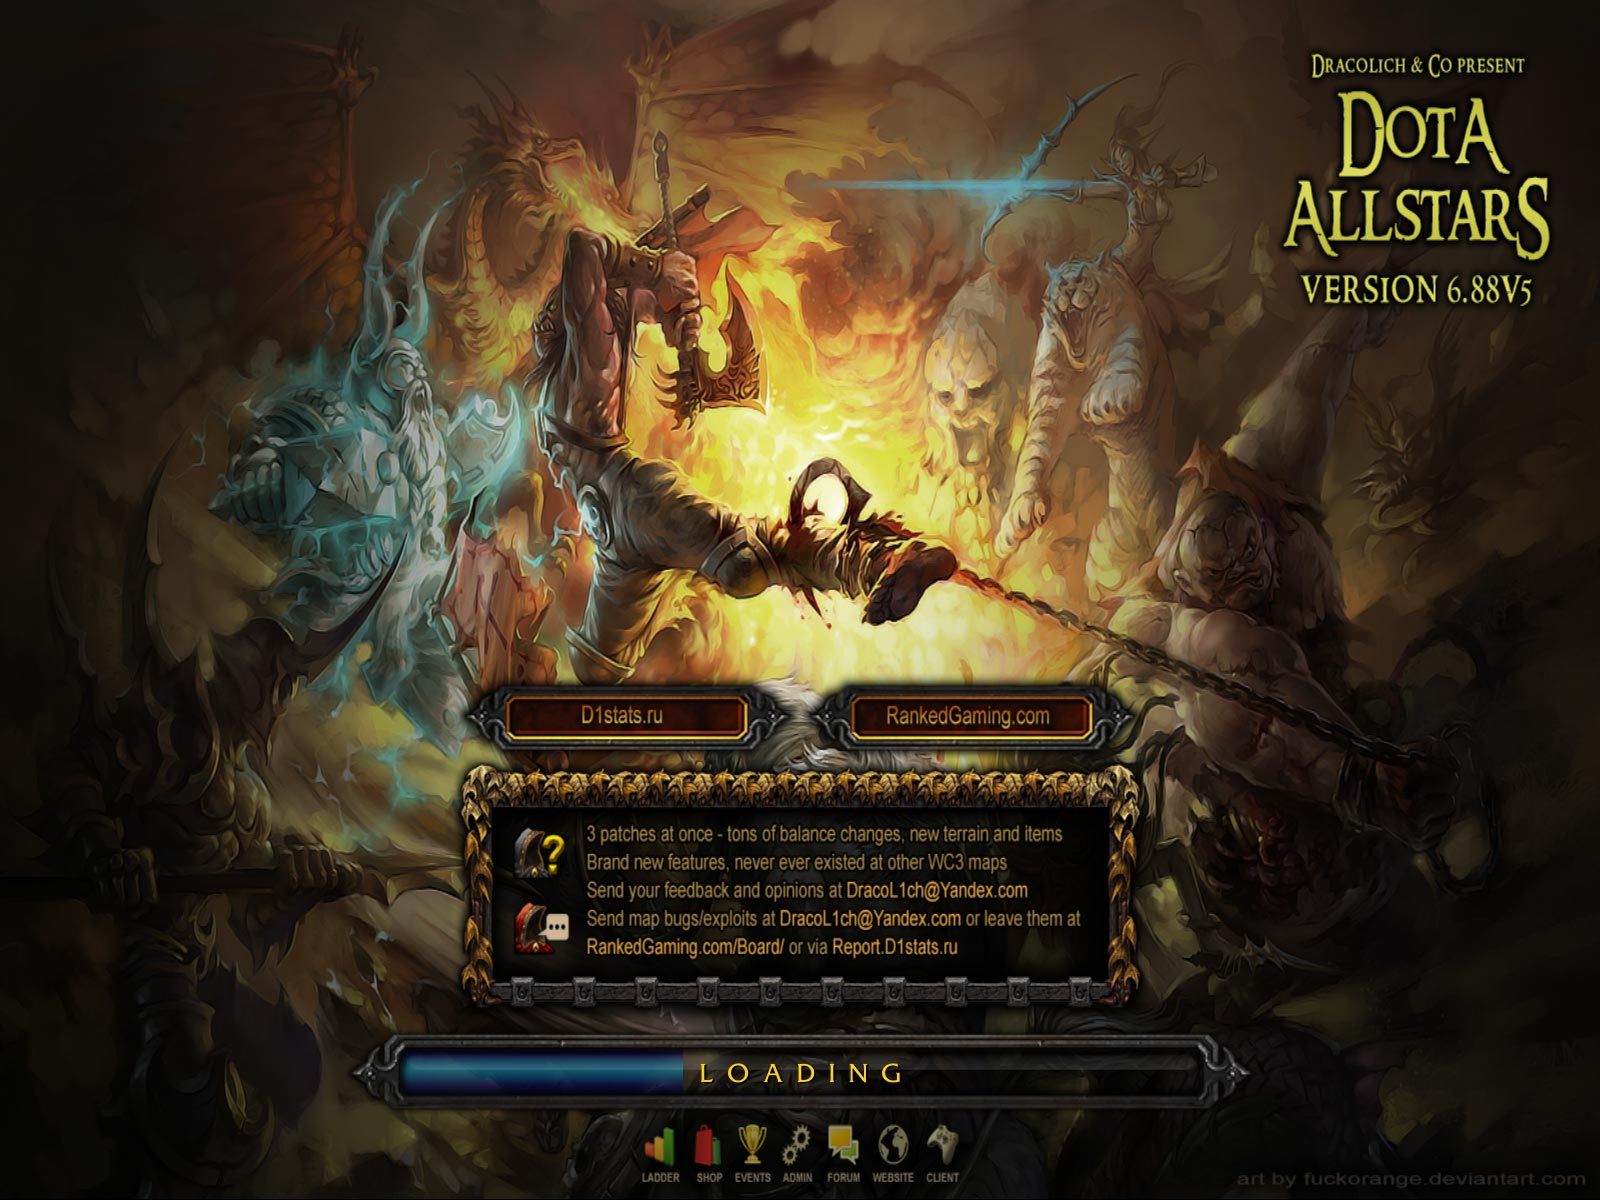 Dota Allstars 6.88v5 RGC Loading Screen